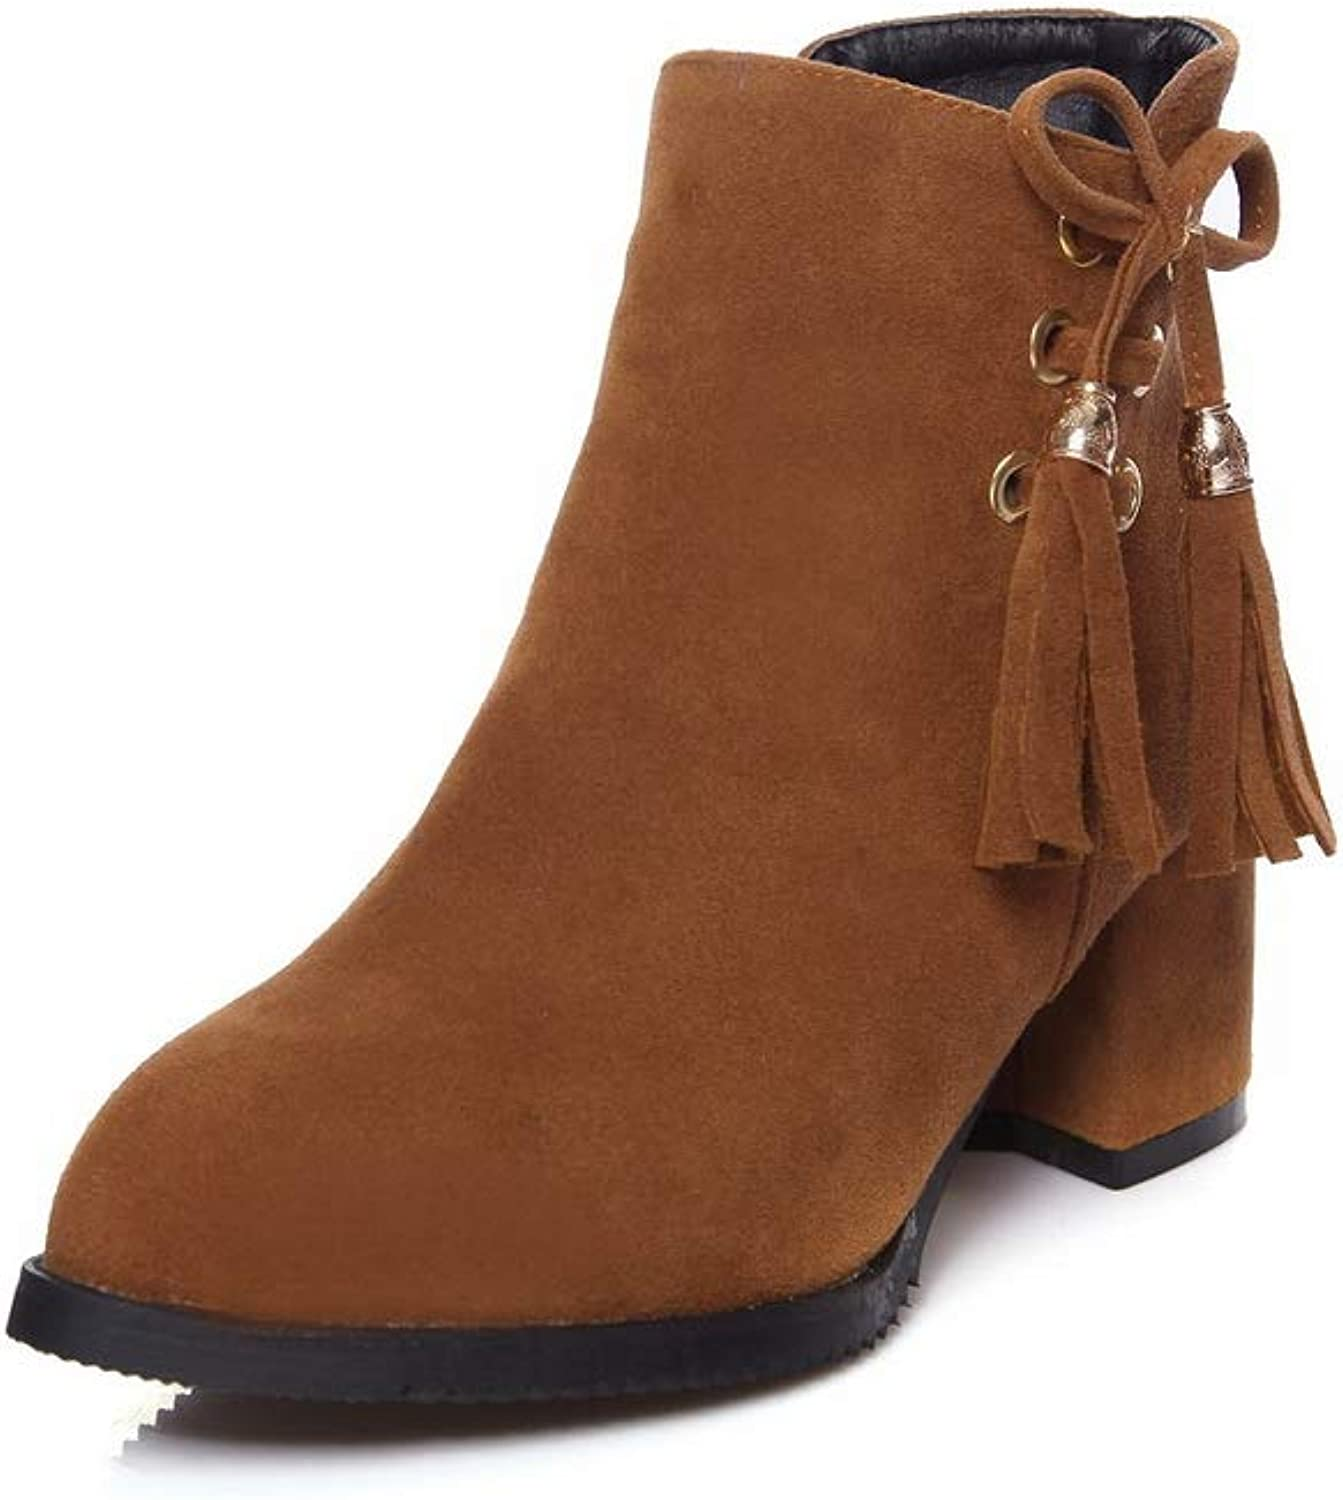 1TO9 Womens Platform Solid Fringed Urethane Boots MNS02727